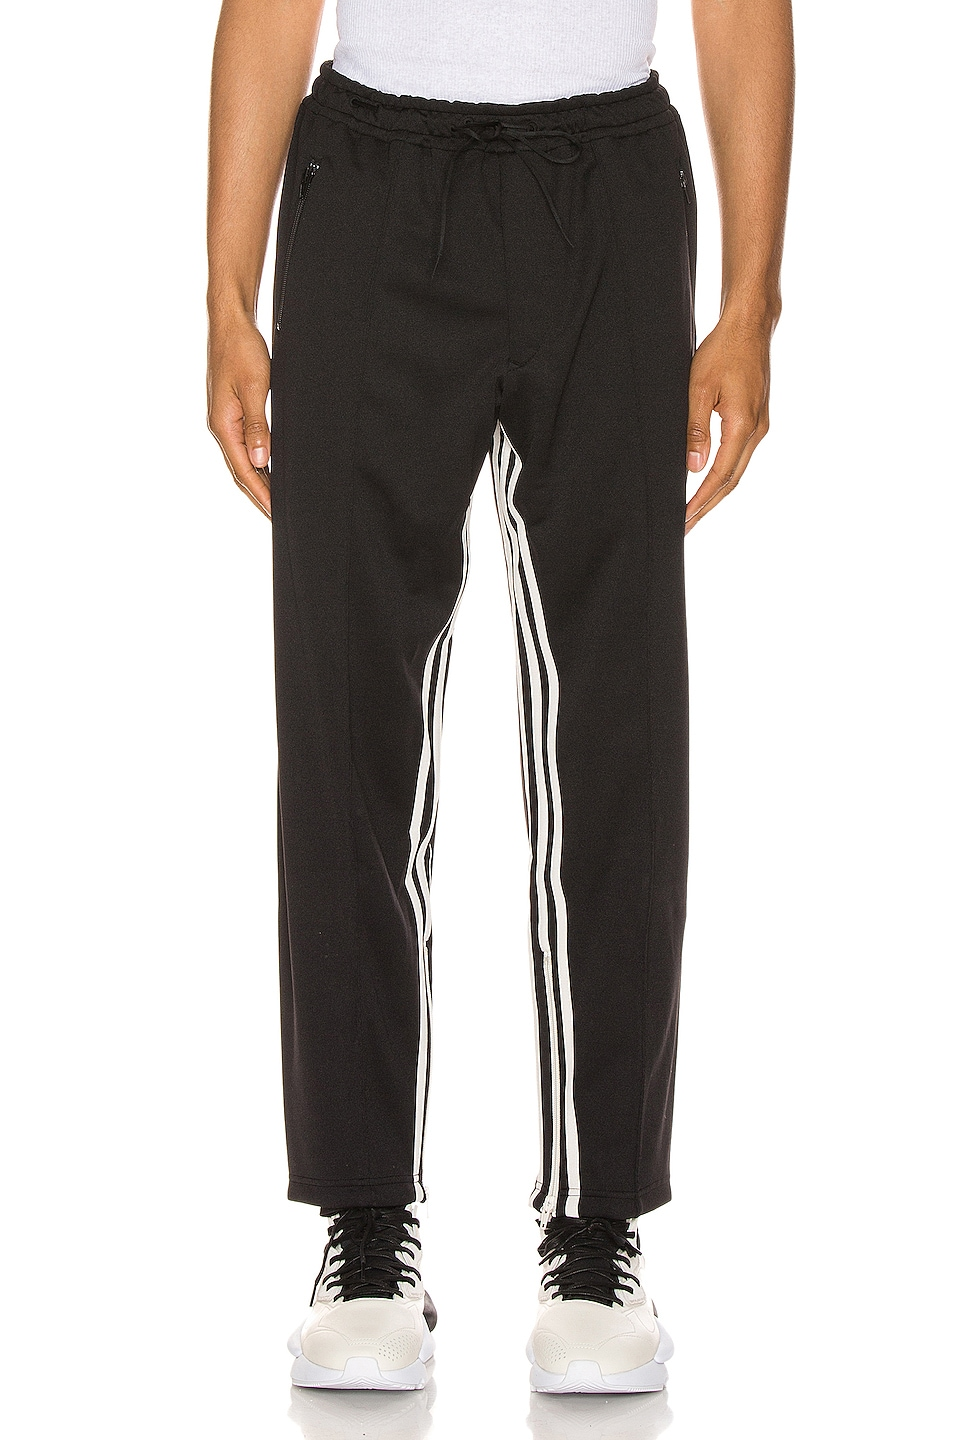 Image 2 of Y-3 Yohji Yamamoto 3 Striped Cropped Track Pant in Black & Ecru